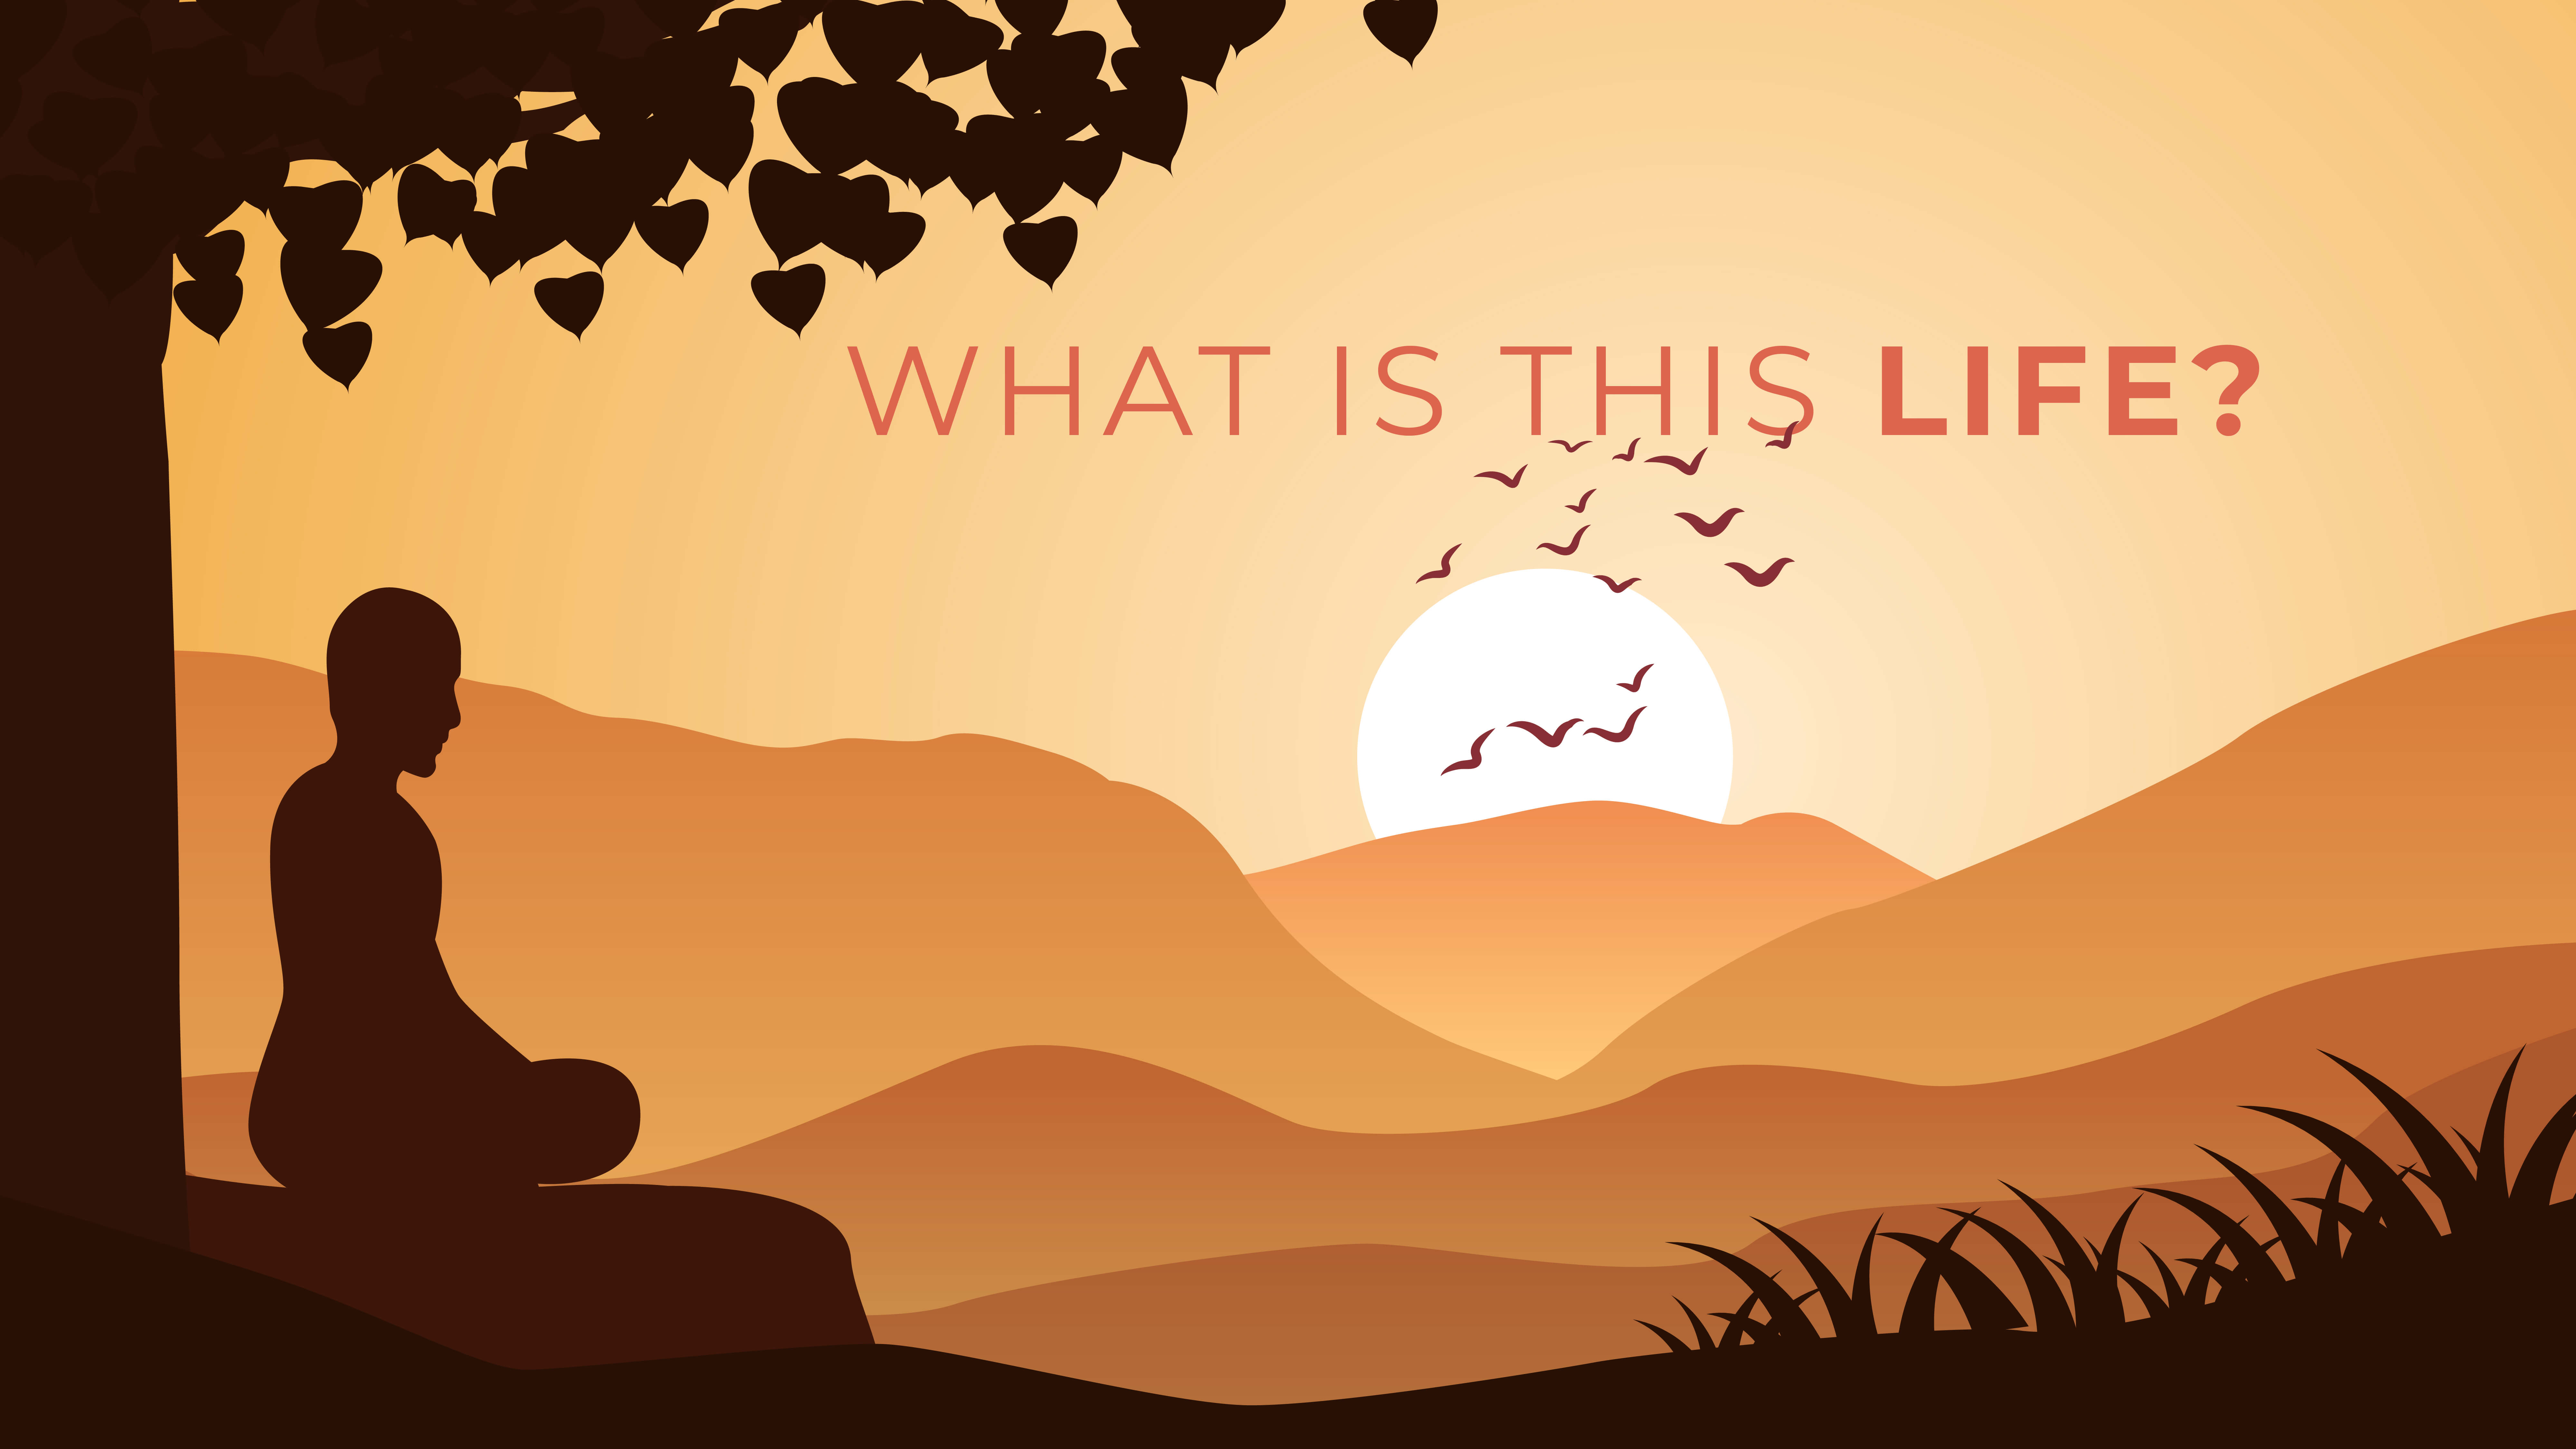 What is this Life really about? sameer kamboj